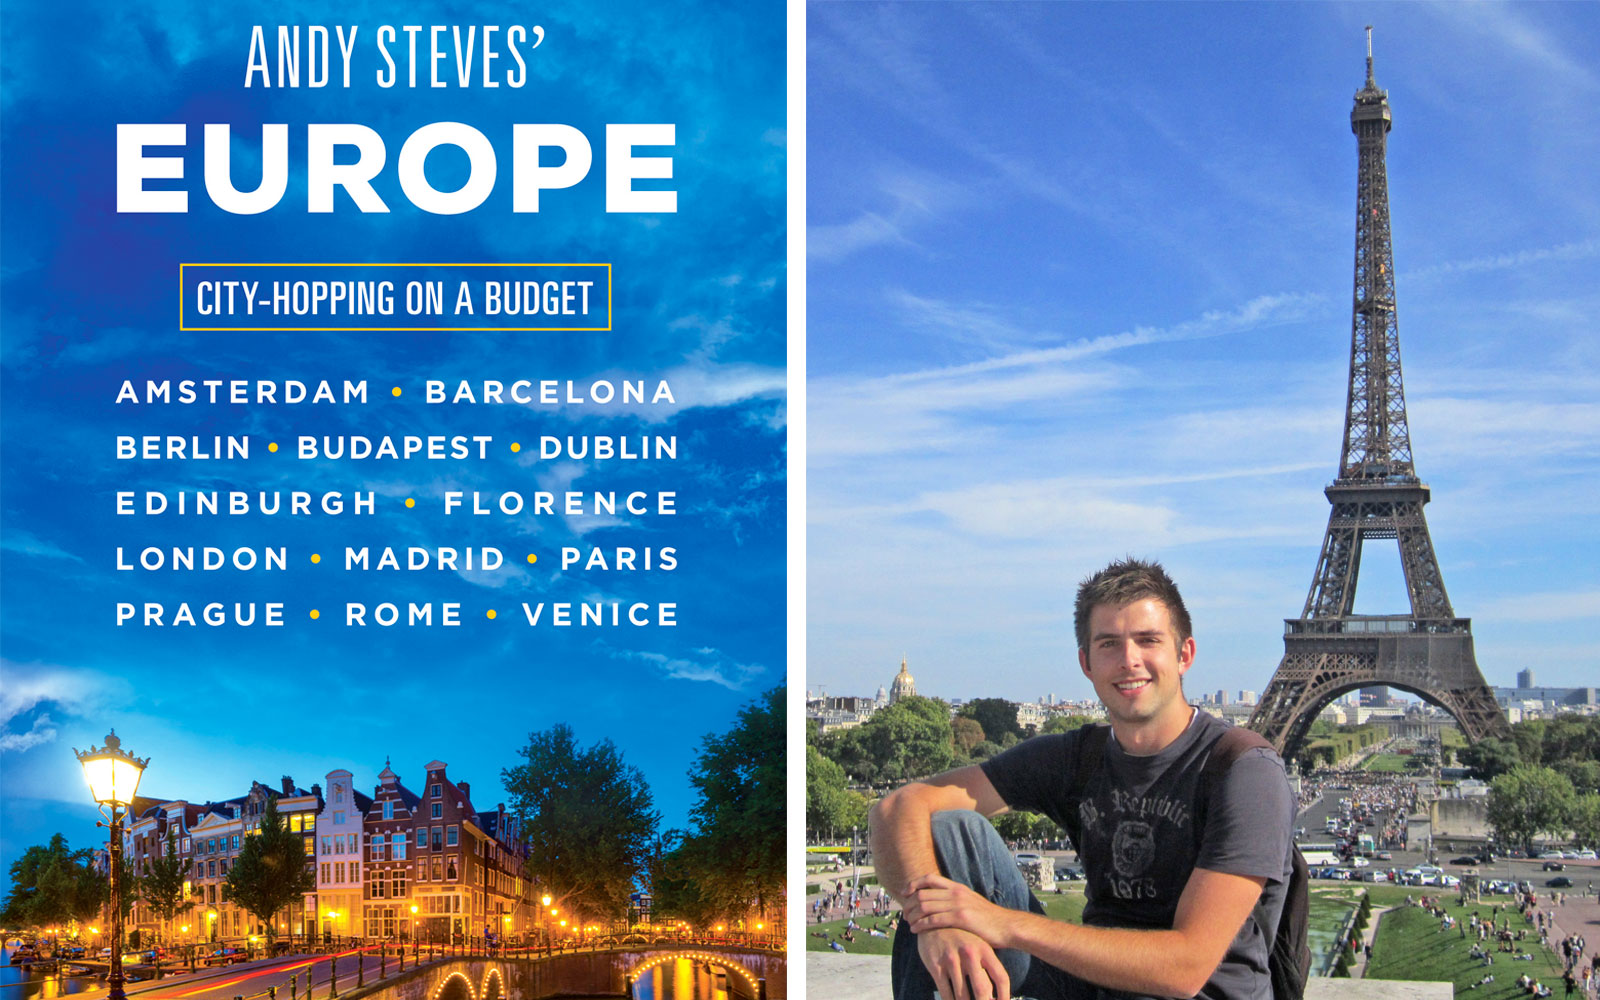 Andy Steve's Traveling Europe on a Budget